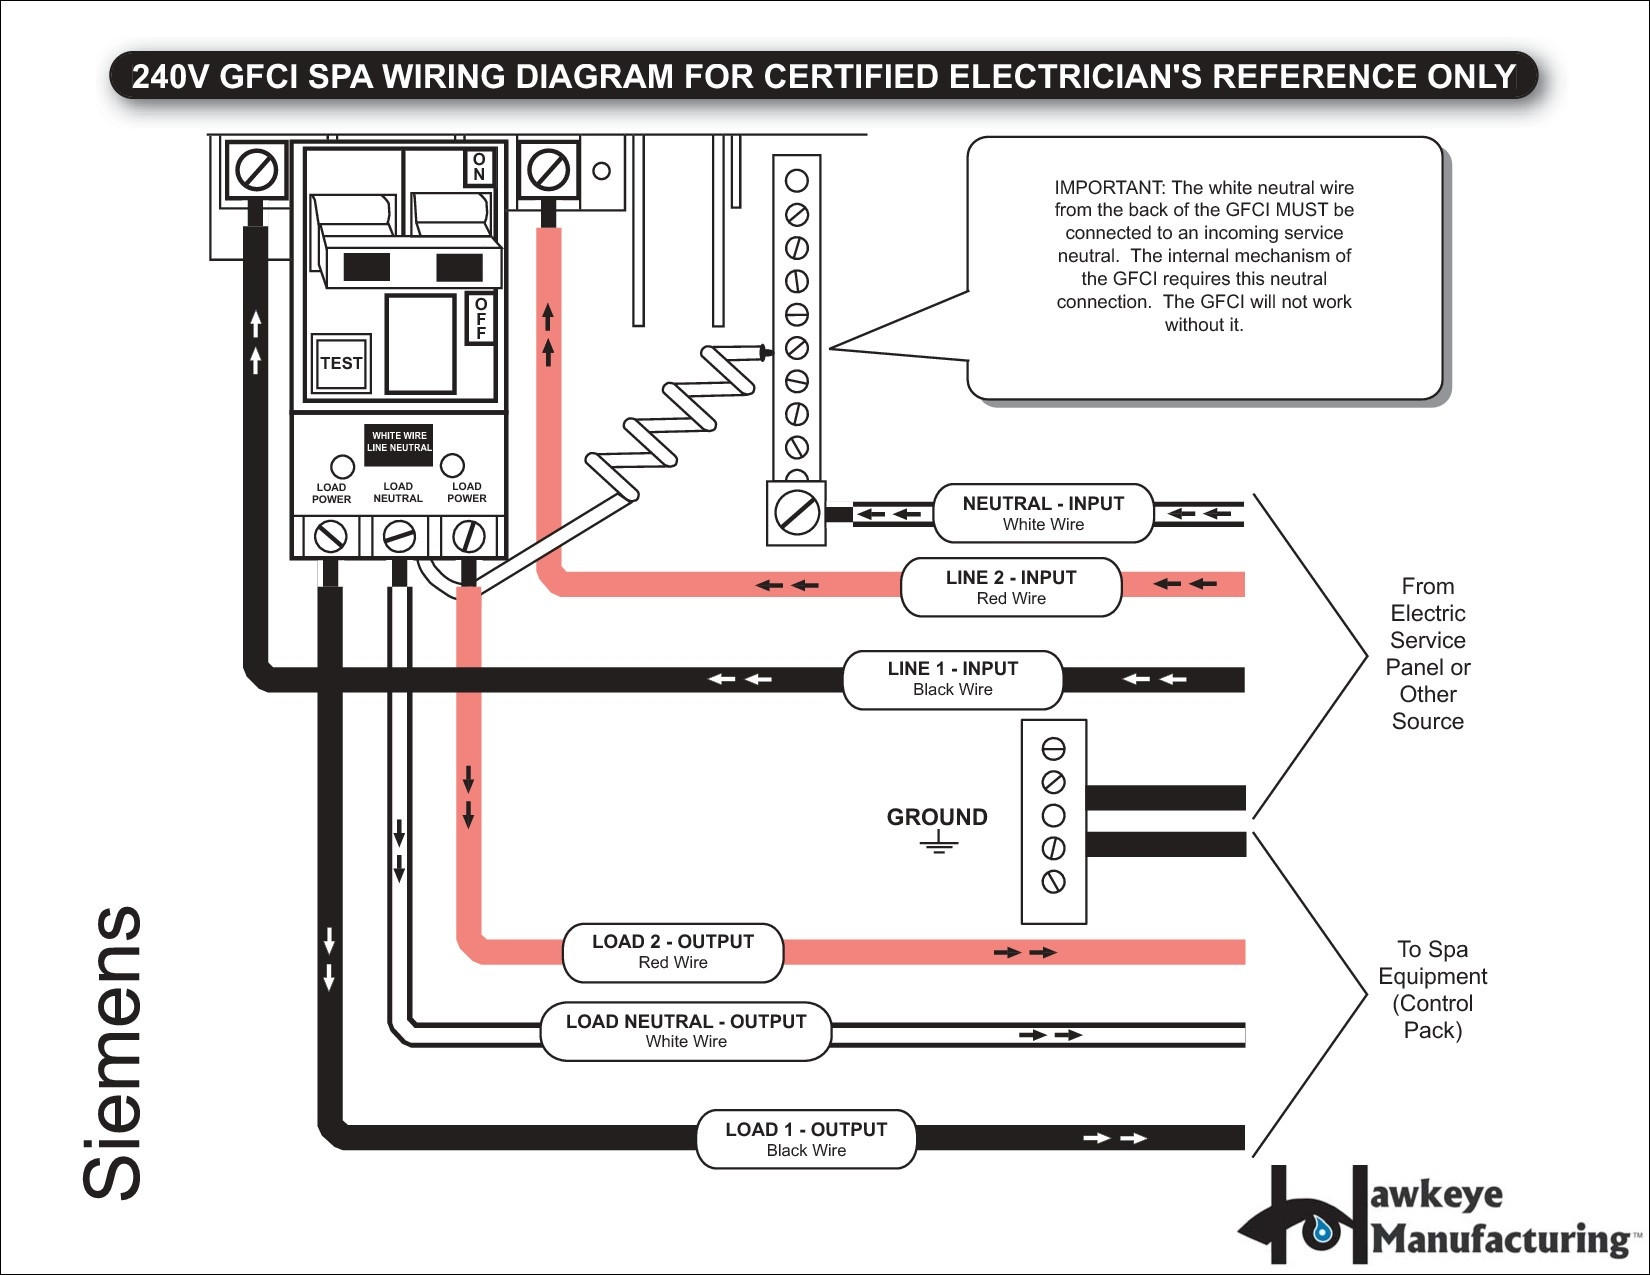 spa gfci wiring diagram wiring diagram review Hot Springs Spa Plumbing Diagram